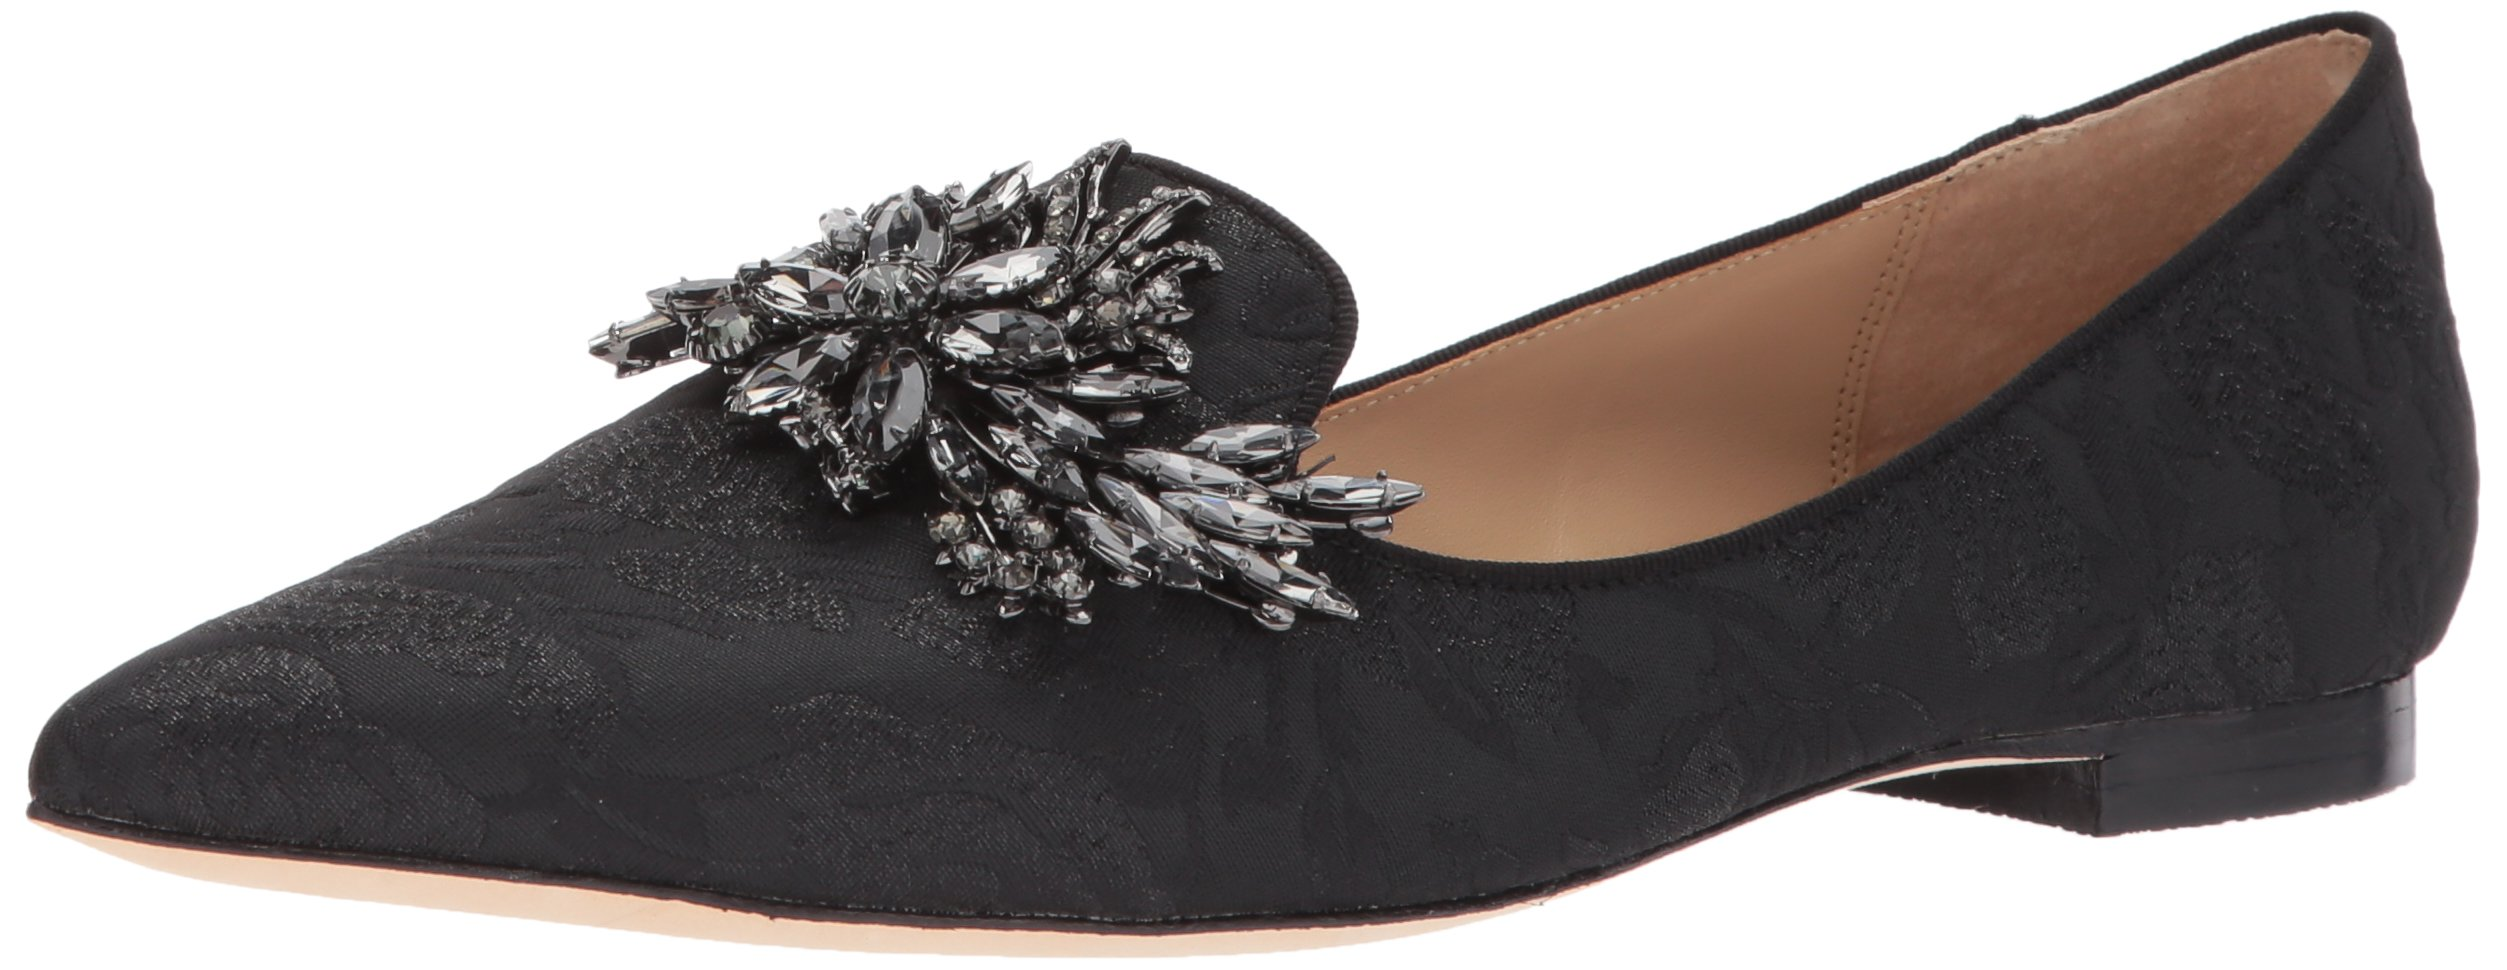 Badgley Mischka Women's Mandy Loafer Flat, Black, 6.5 M US